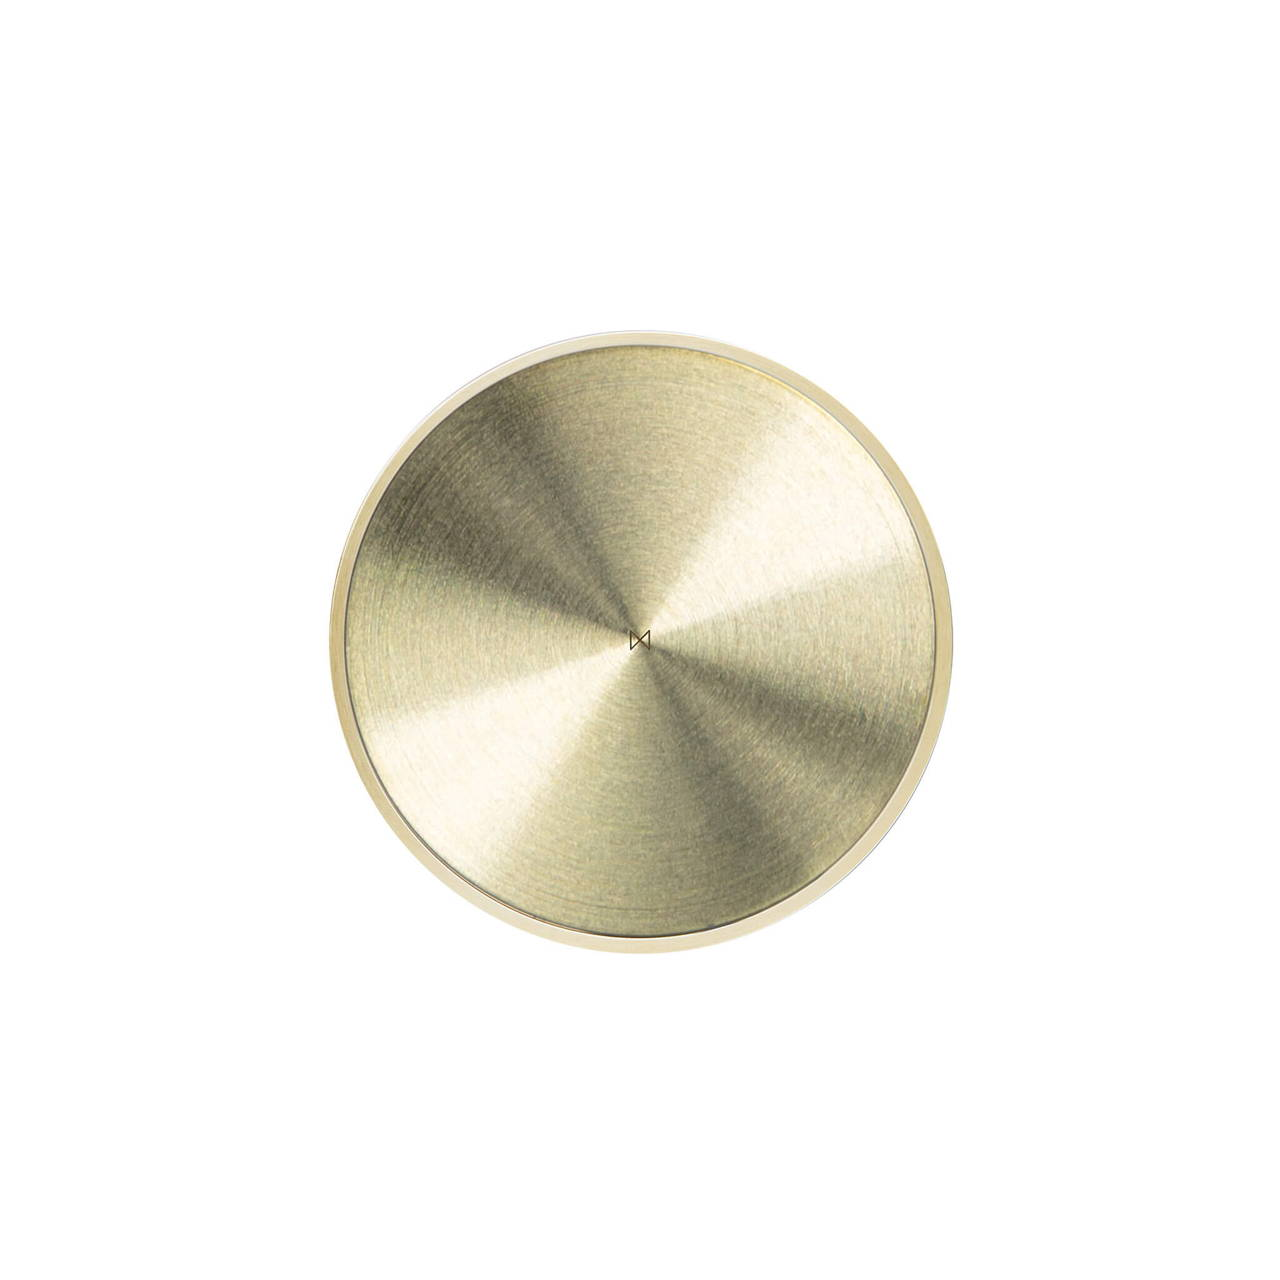 Brass Pocket Mirror back face